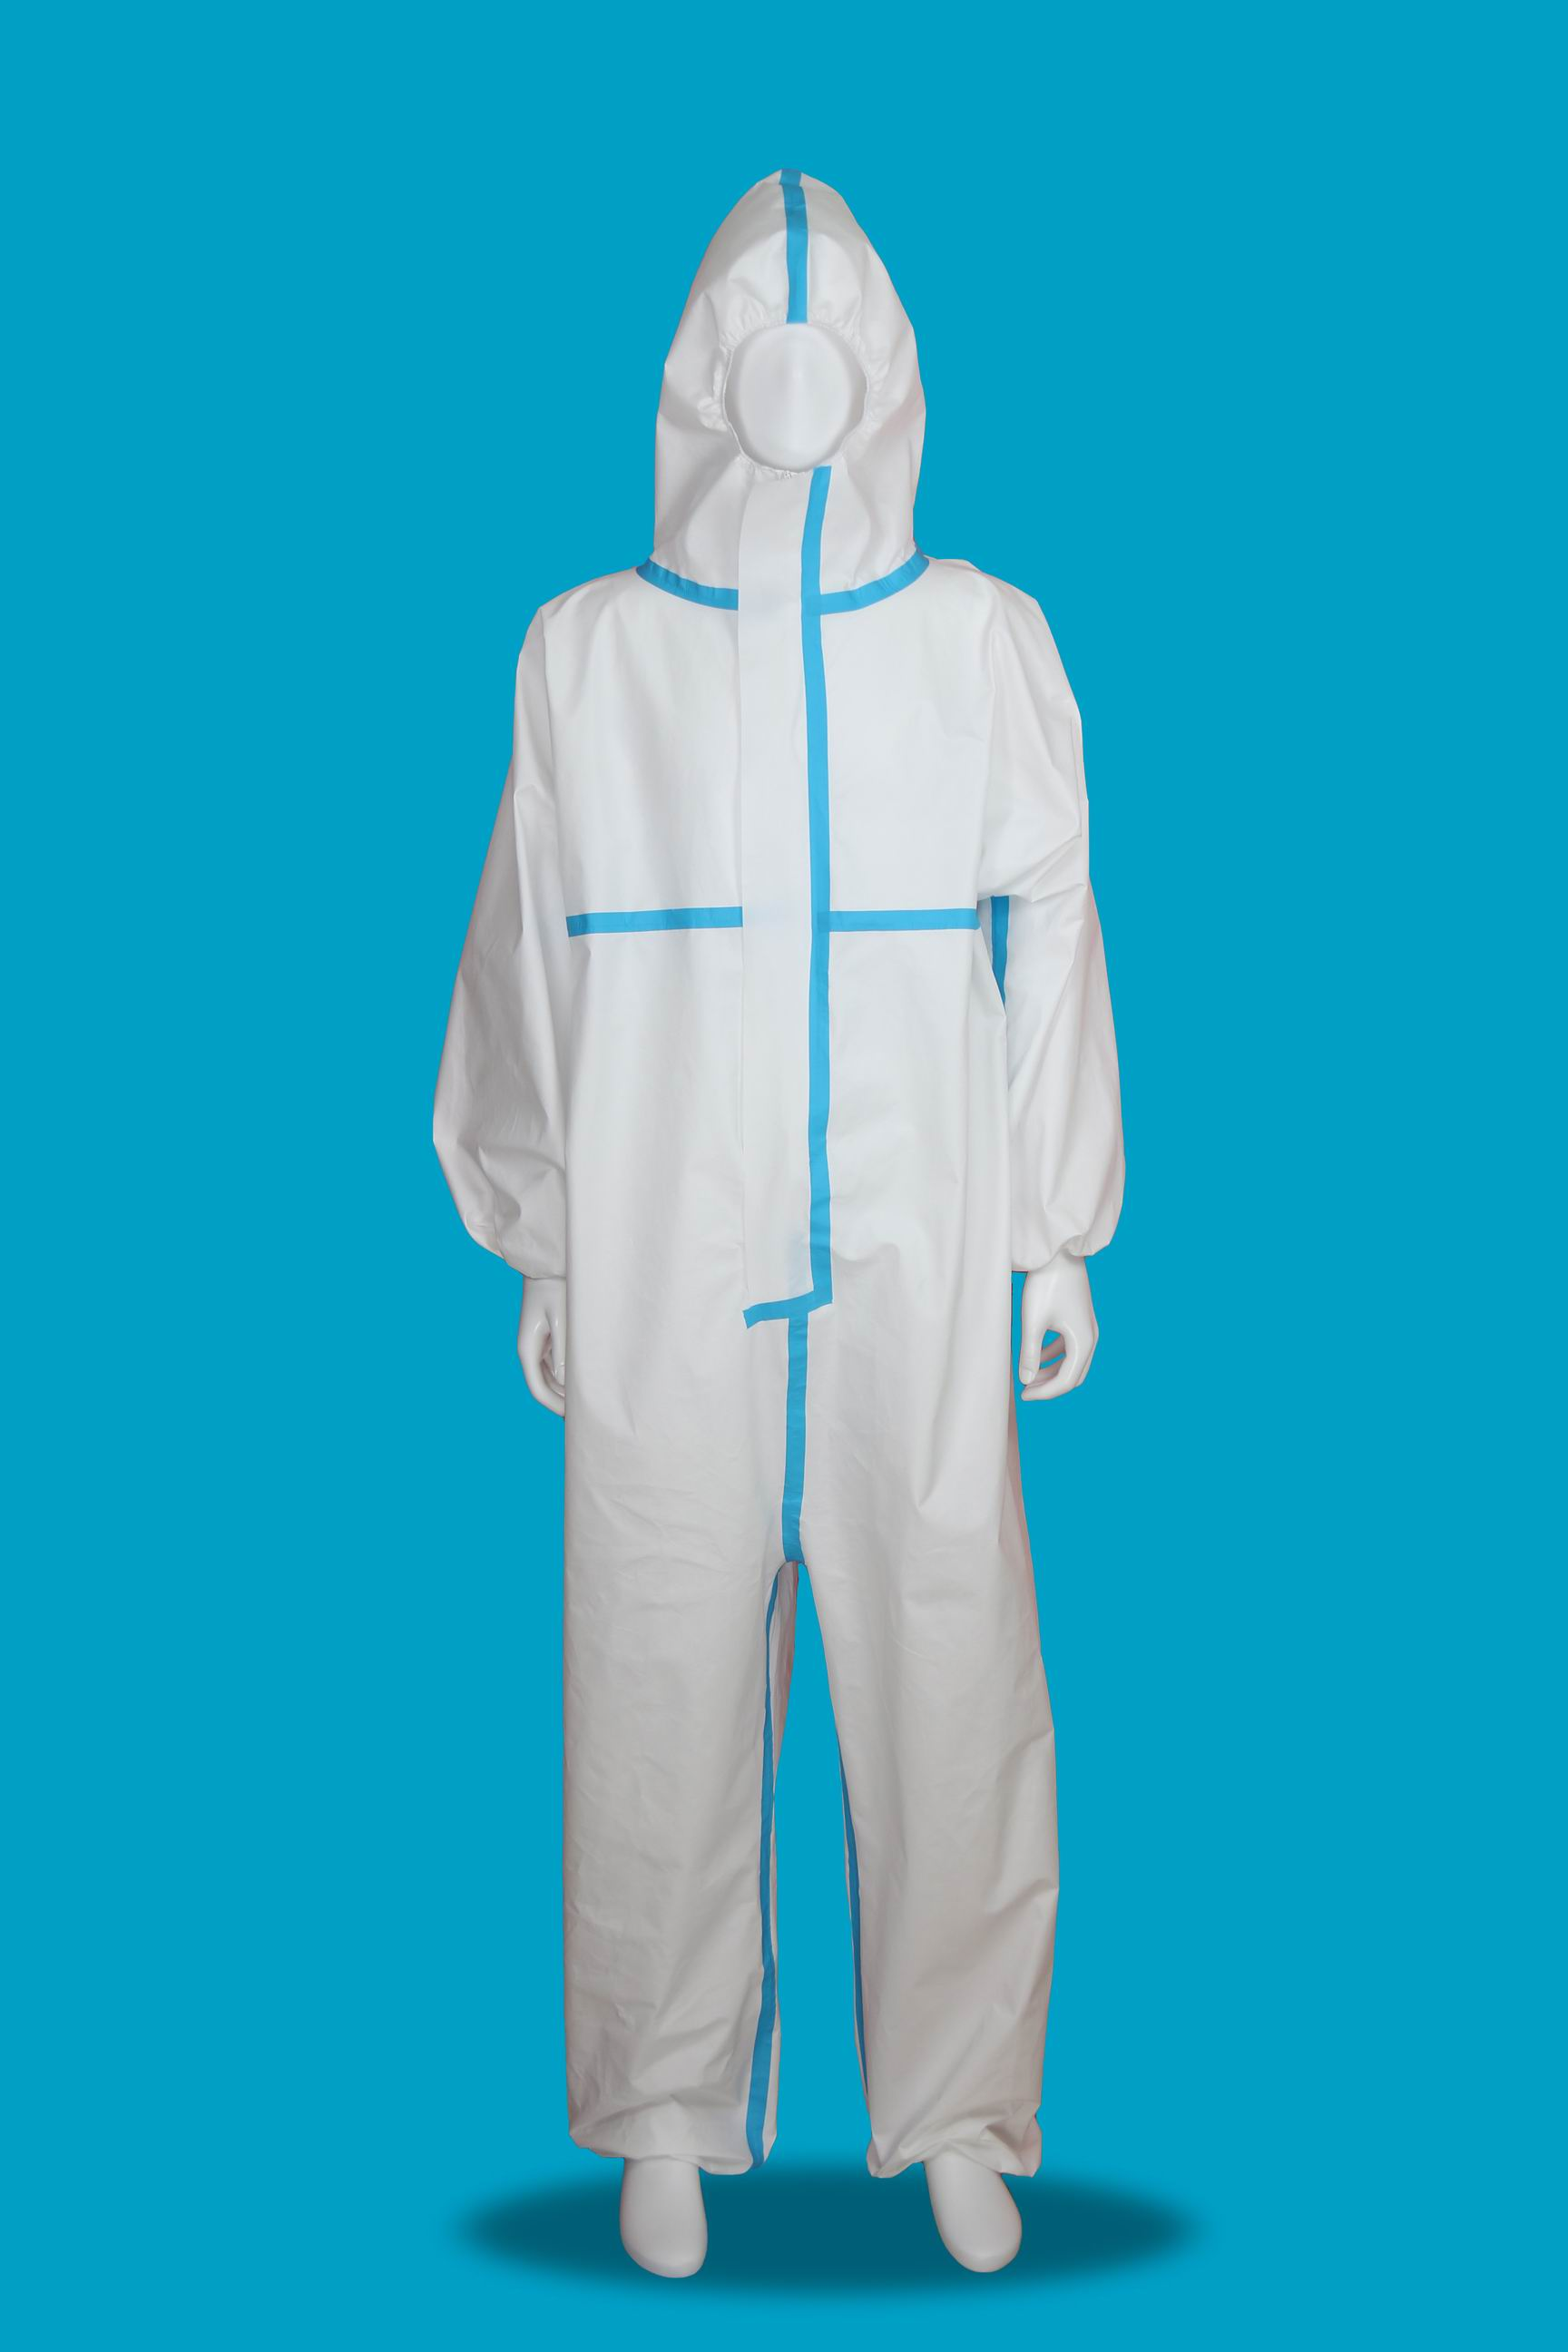 Disposable Medical Protective Clothing (Coverall) TYPE 3